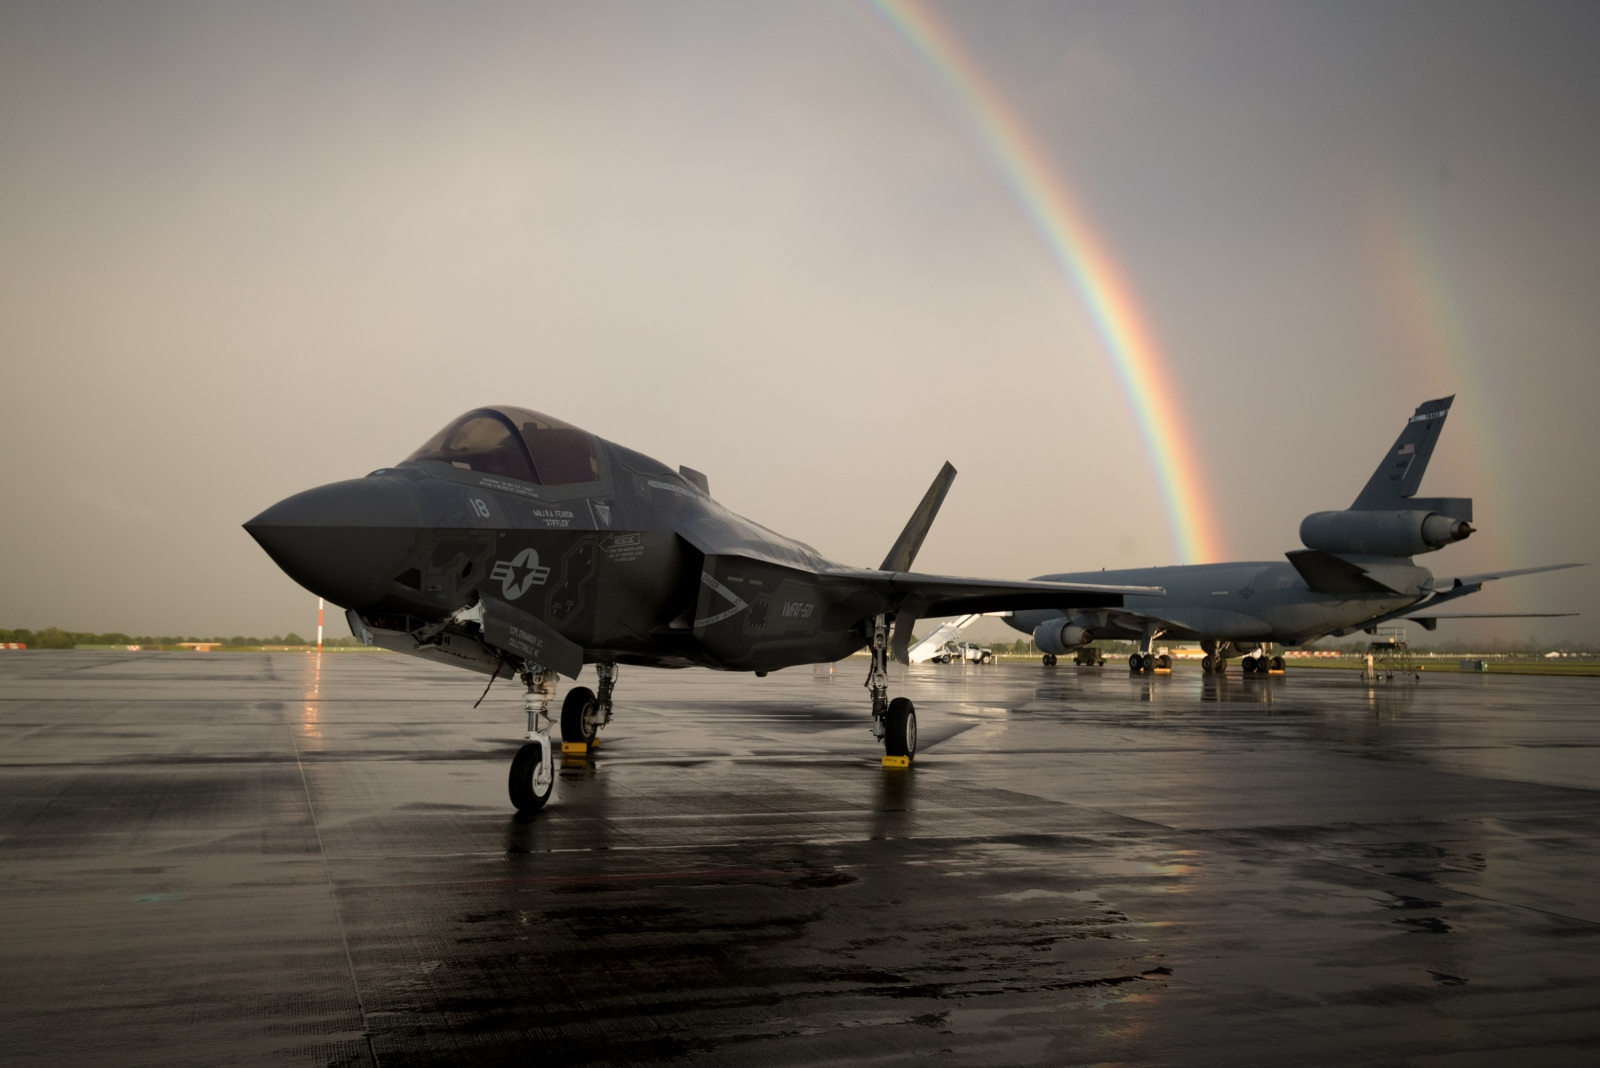 US Navy recruits Orbital ATK to build anti-air defence missiles for its F-35 joint strike fighters